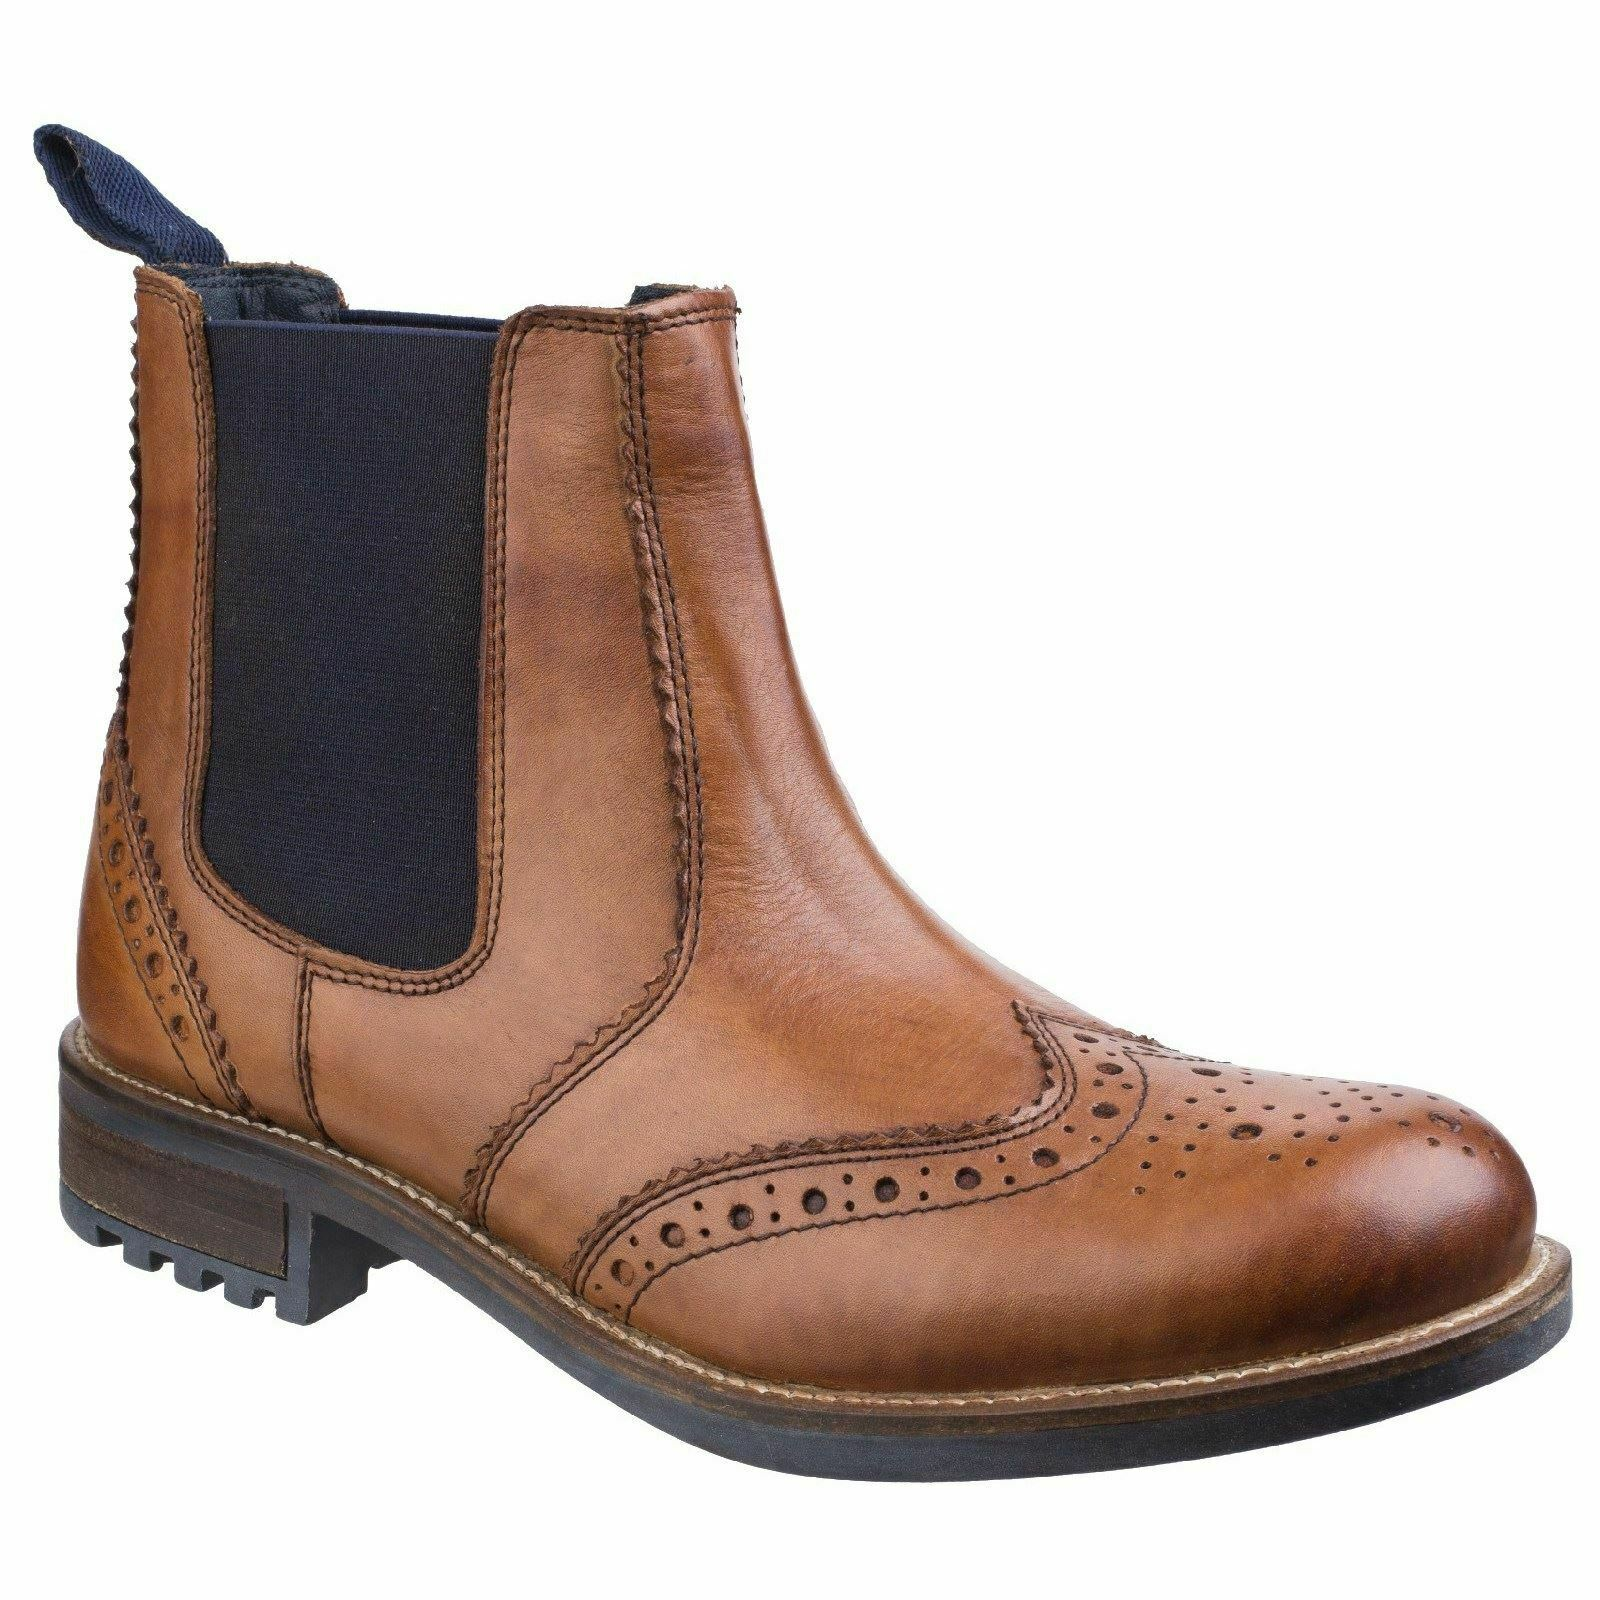 Cotswold Cirencester Tan Mens Stiefel Full Grain Leather